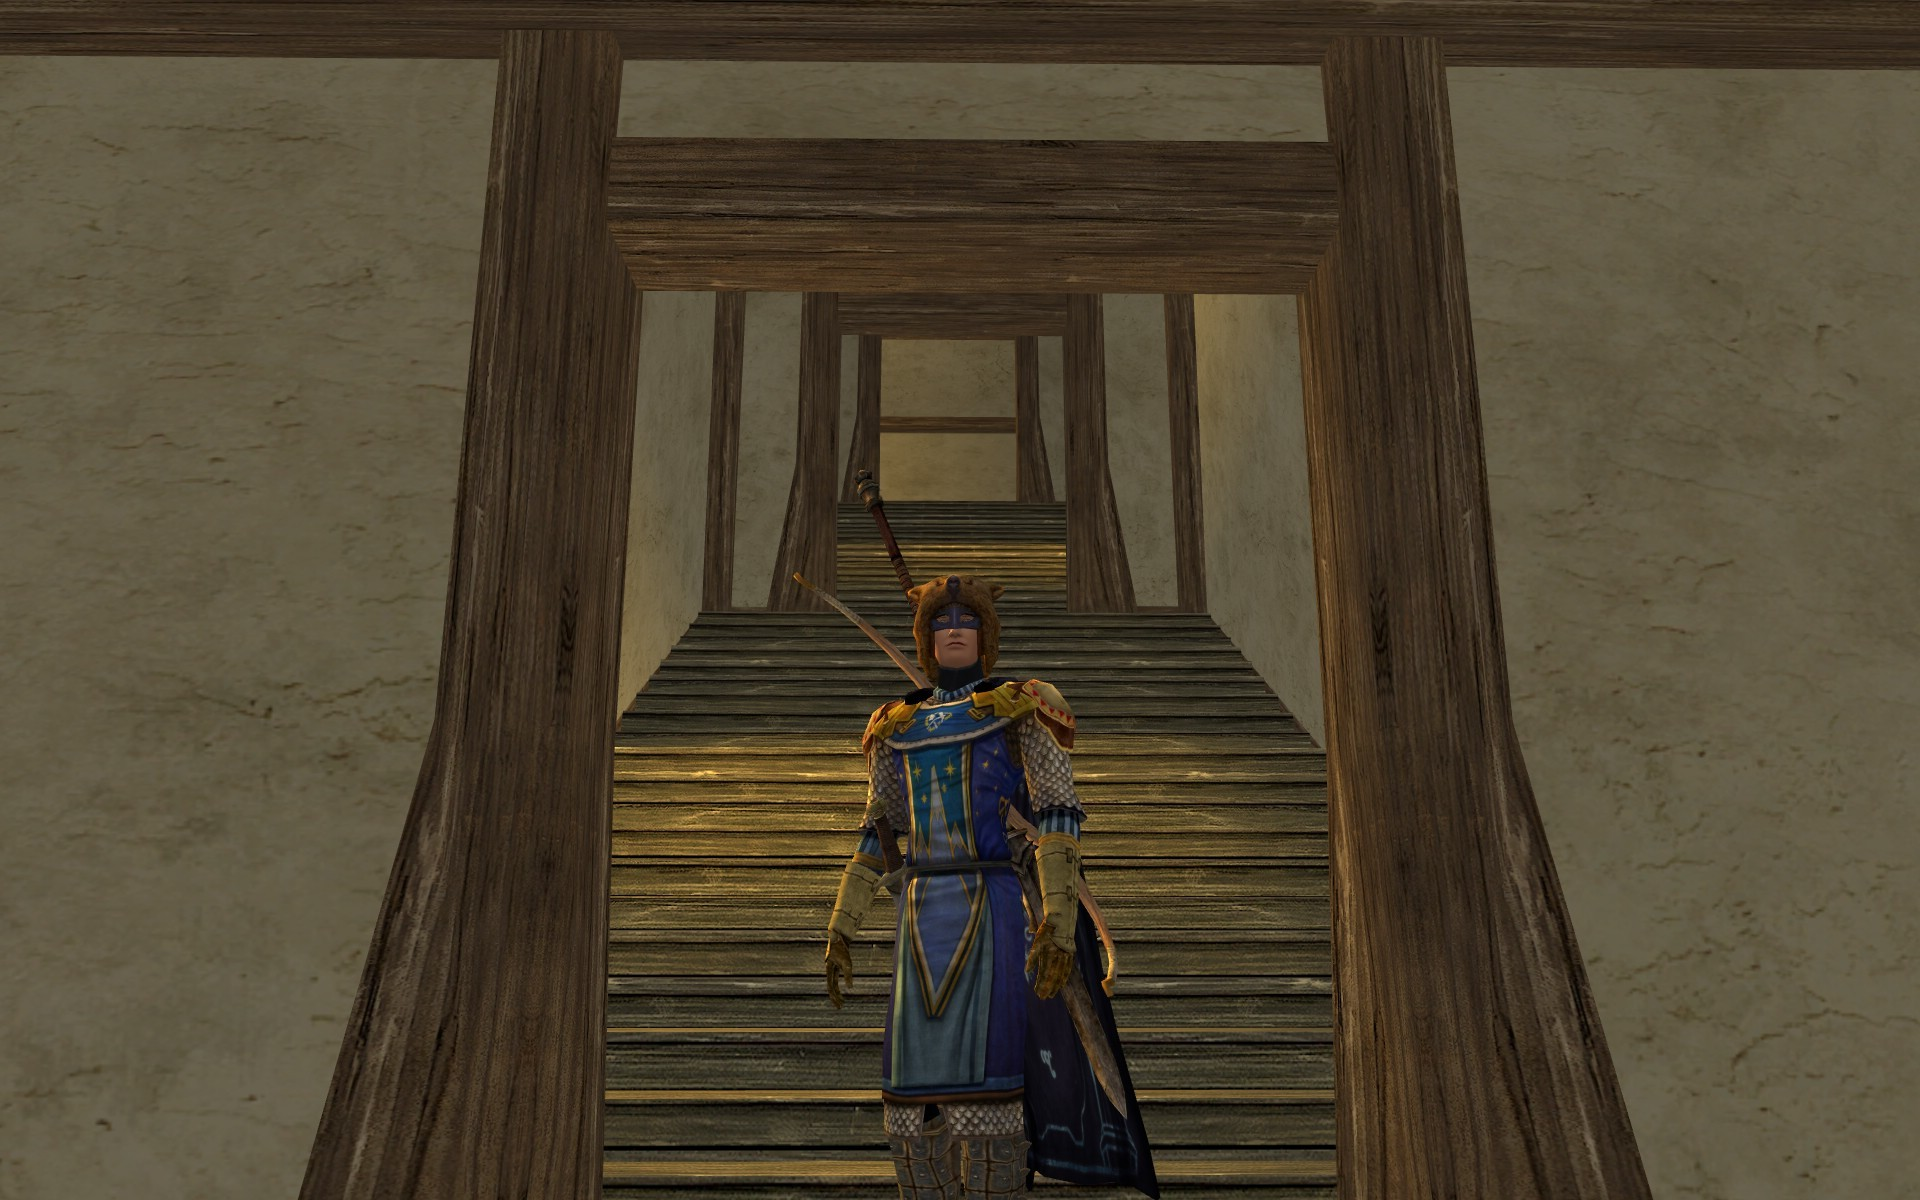 Lord of the Rings Online - inside is nice